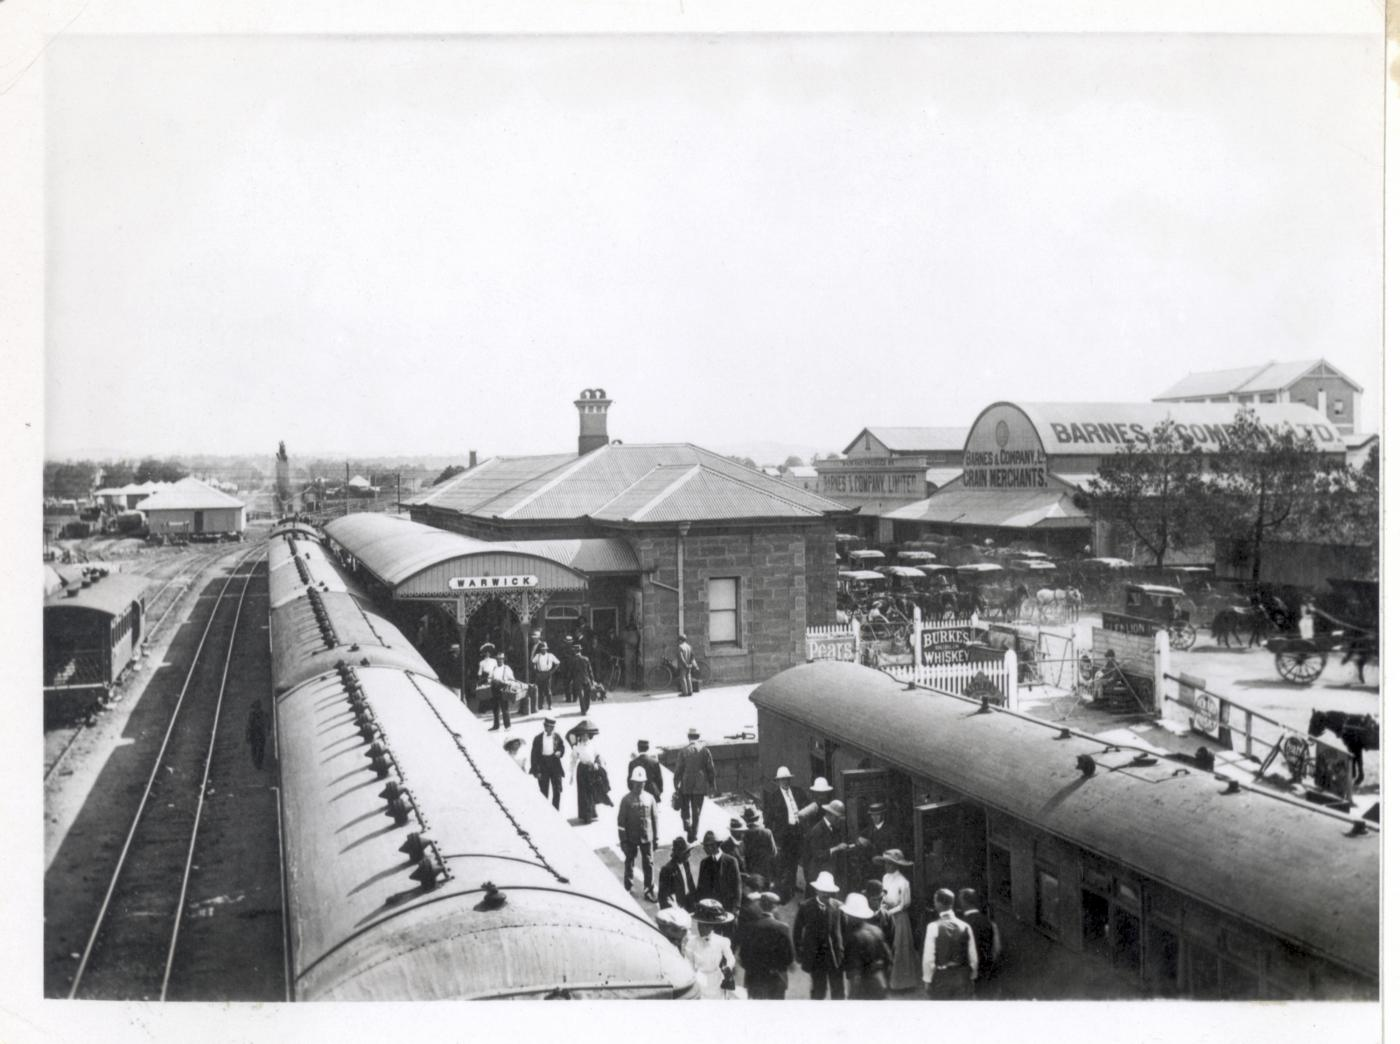 QSA DID 3078: Passengers on the platform at Warwick Railway Station, c.1905.